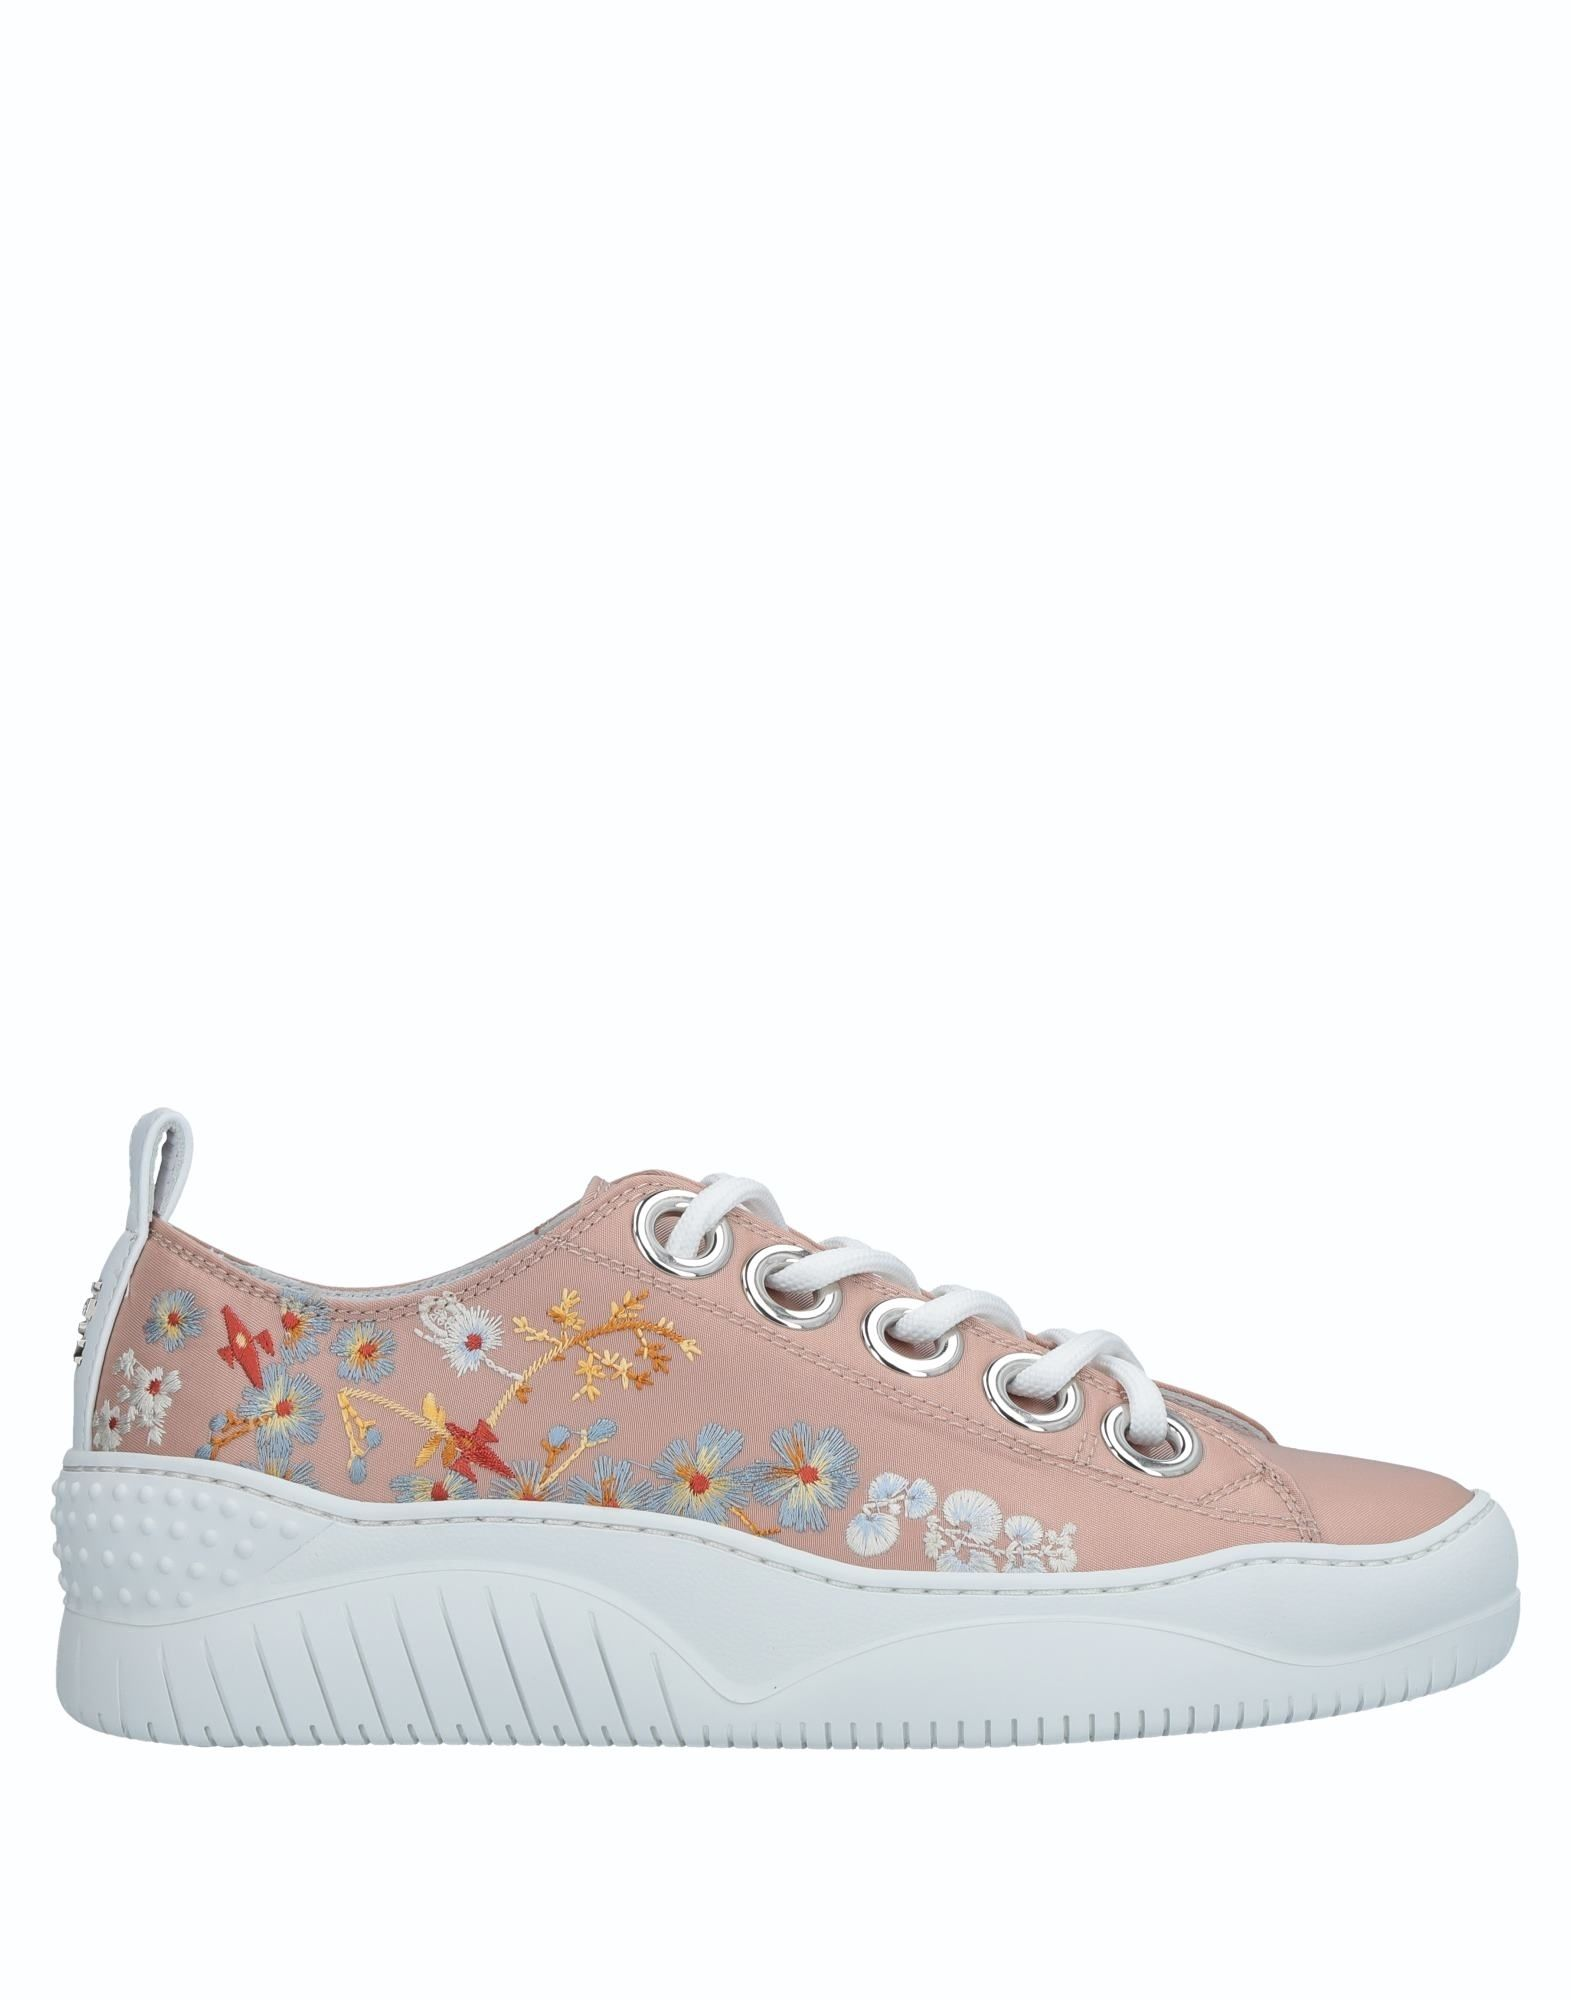 Sneakers N° 21 Donna - 11518062GB